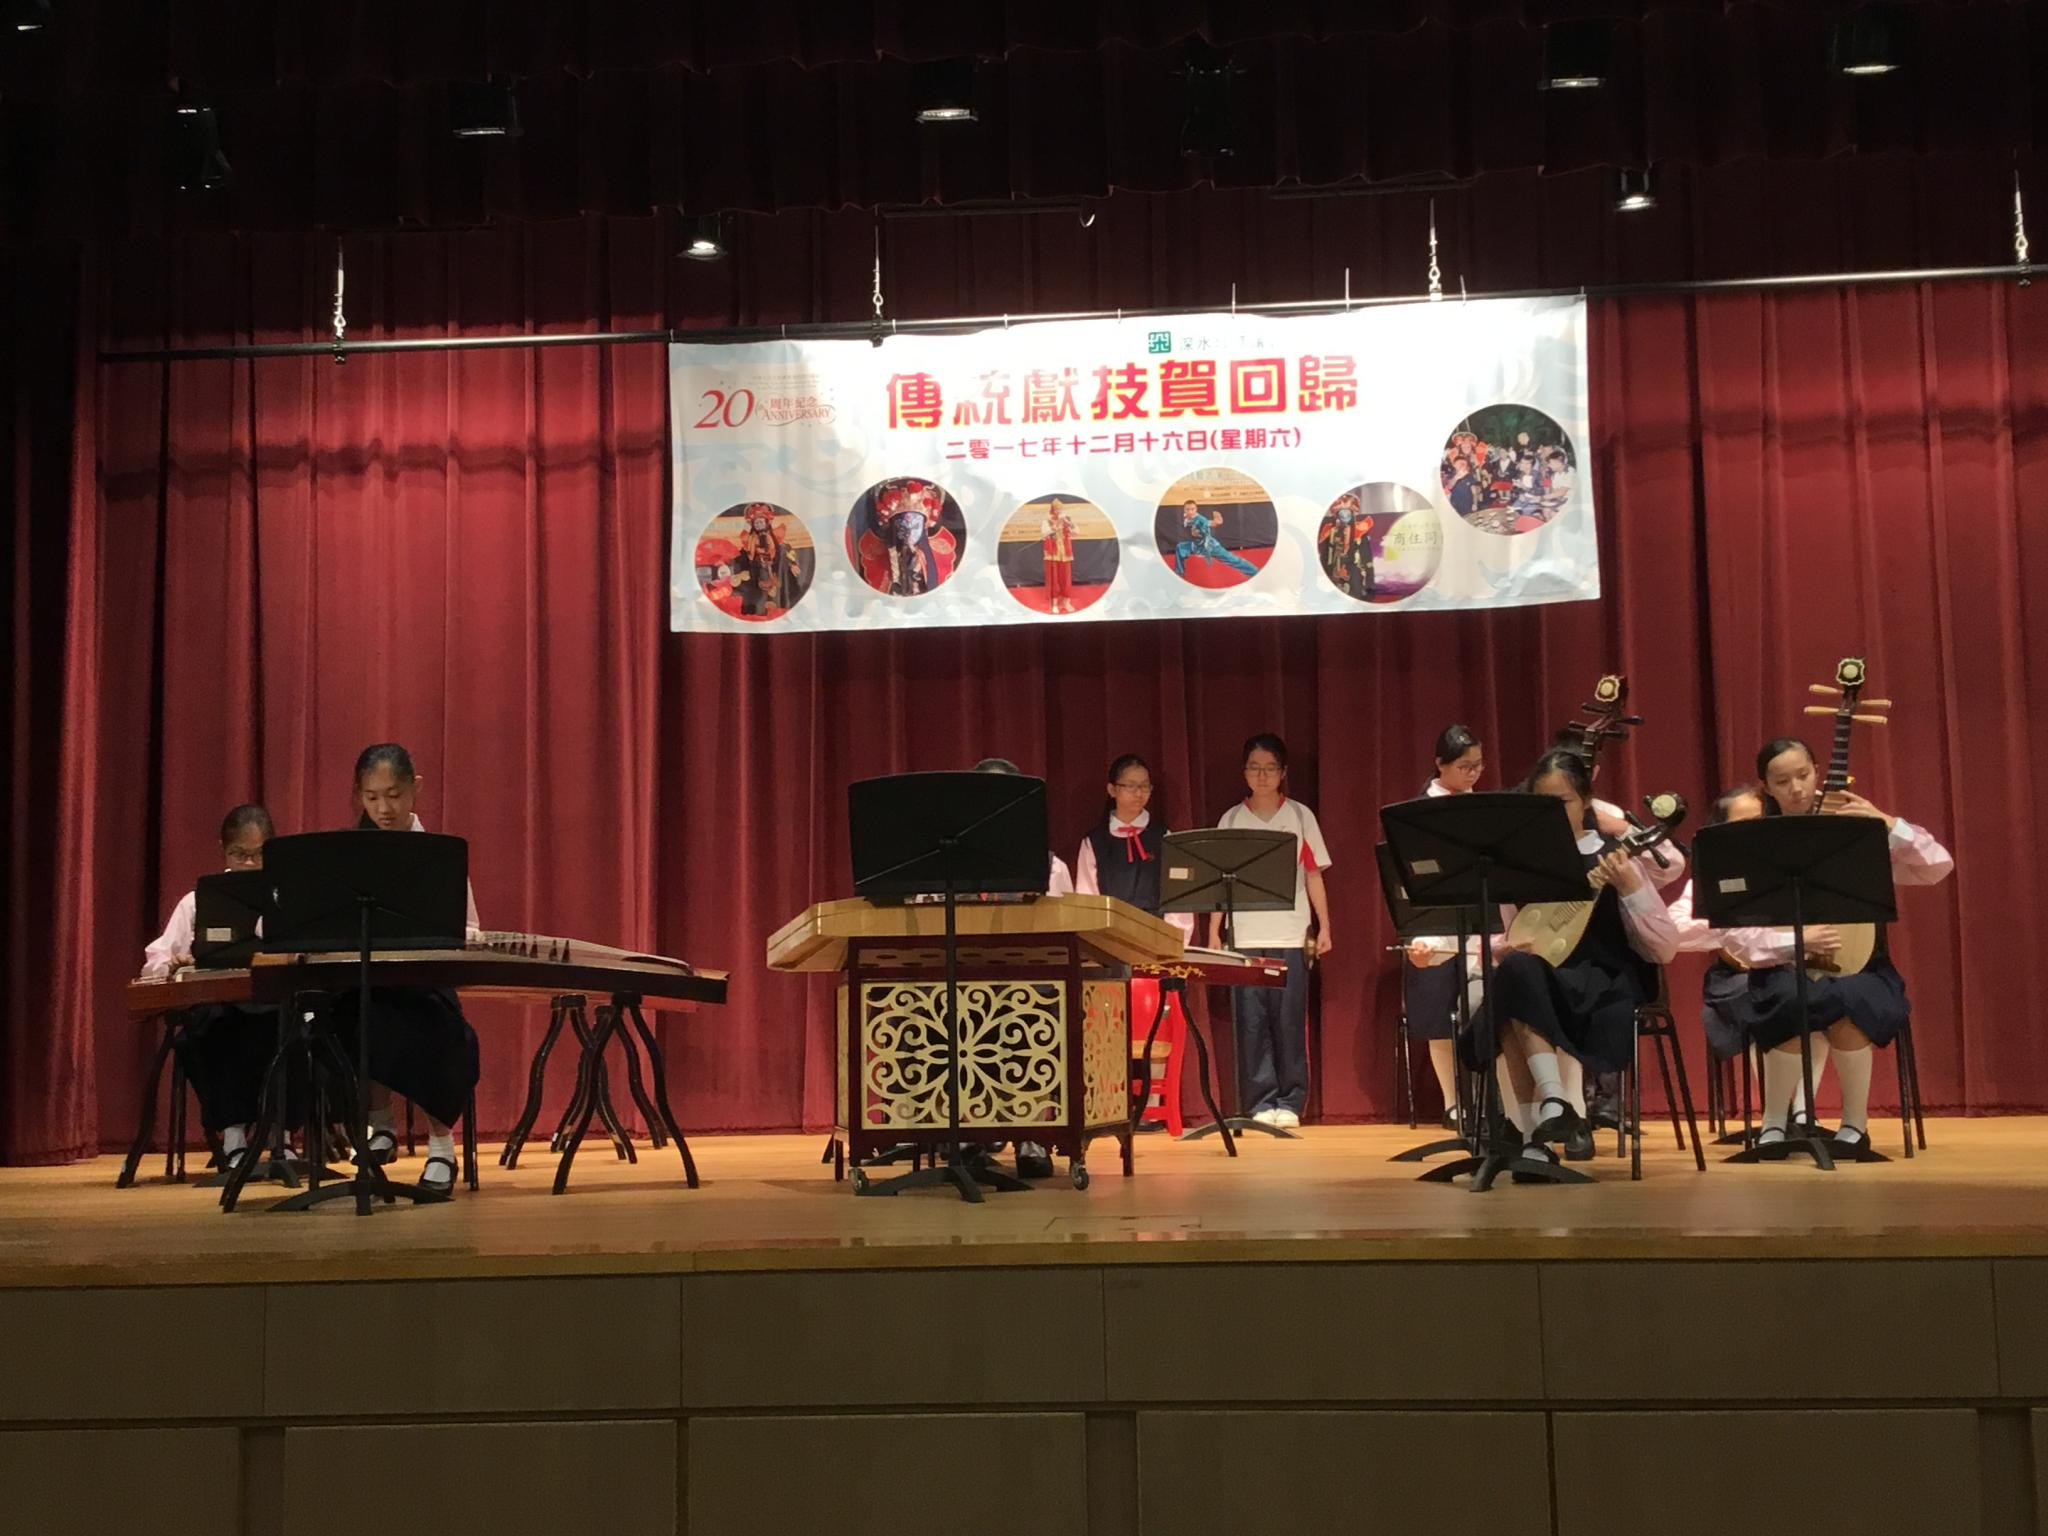 Our Chinese Orchestra is performing a traditional Chinese piece, 'Joyful Moment' at Mei Foo Community Hall.